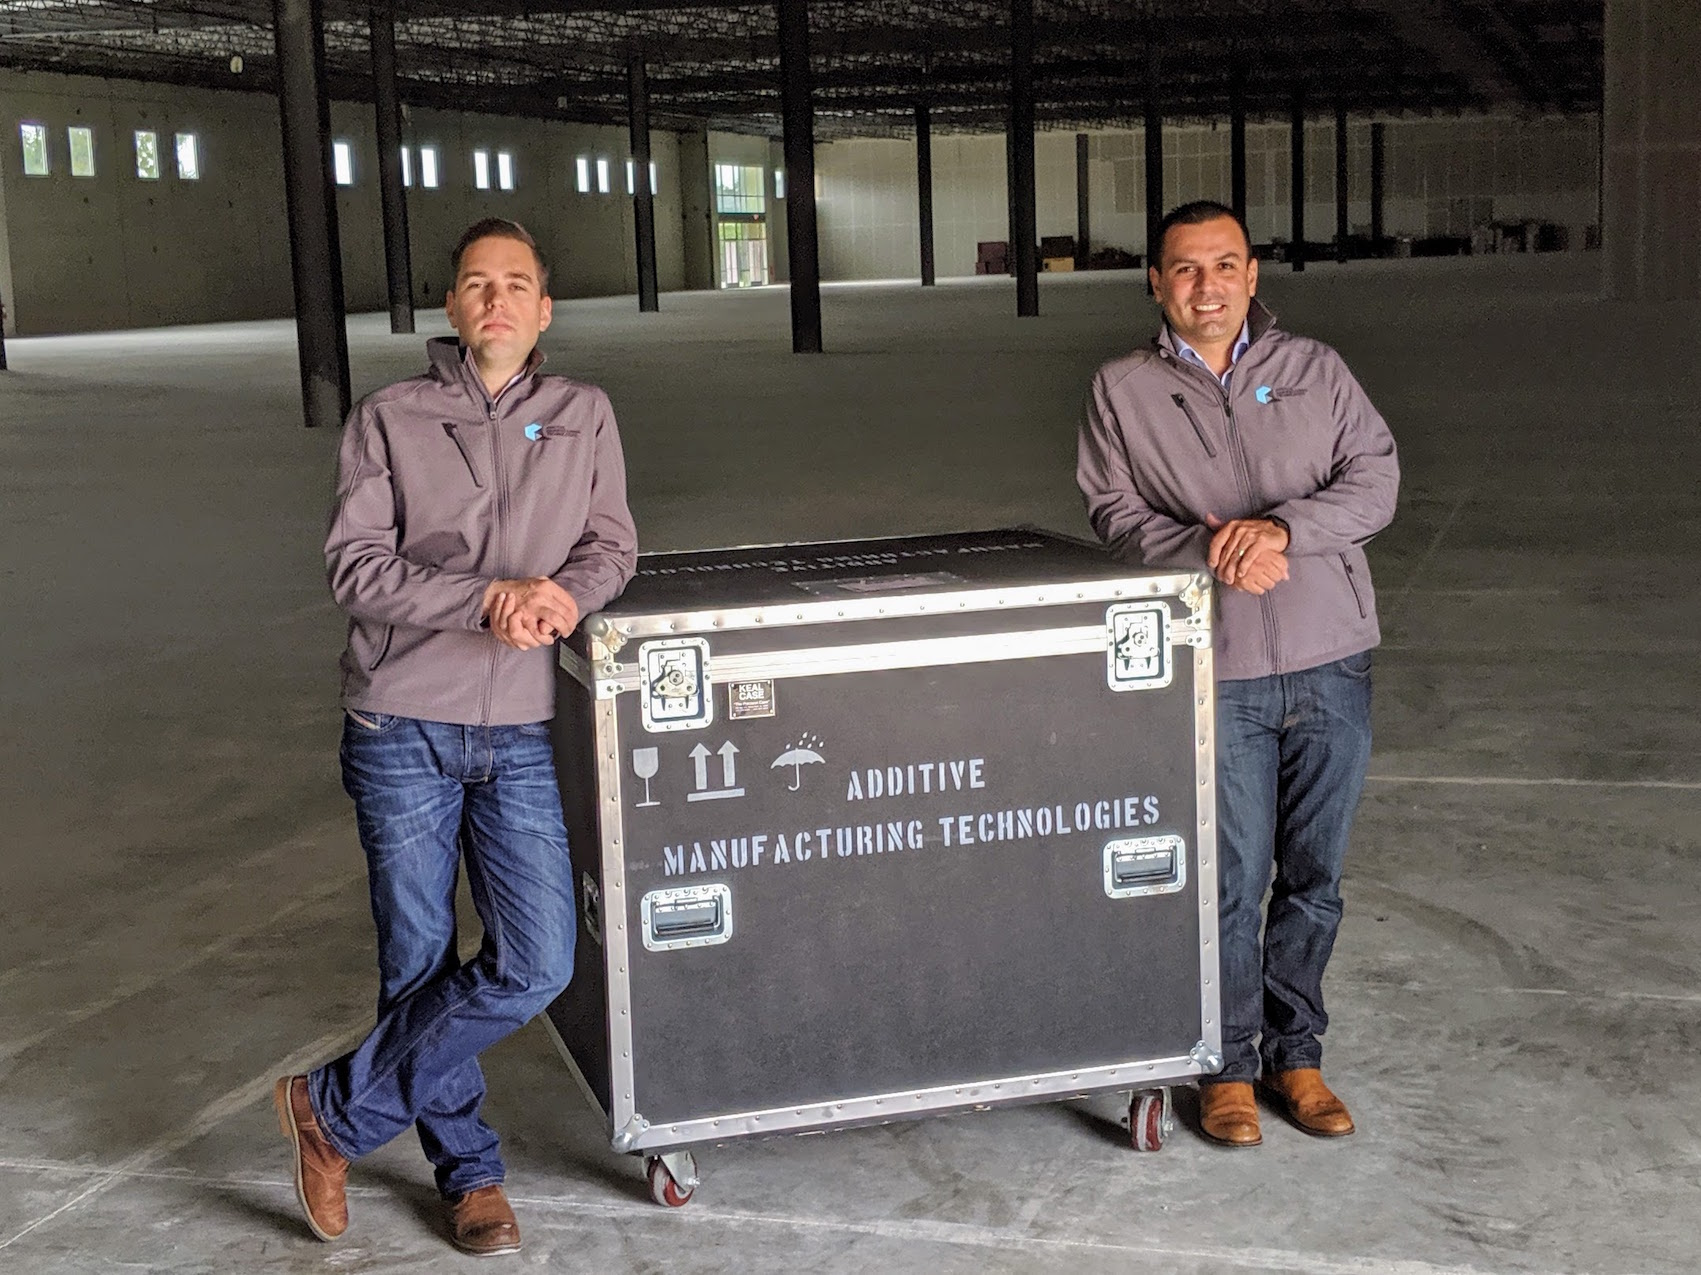 From left: Joseph Crabtree, CEO and Luis Folgar, EVP Americas in the new AMT facility in Austin, Texas. Photo via Additive Manufacturing certification Technologies.